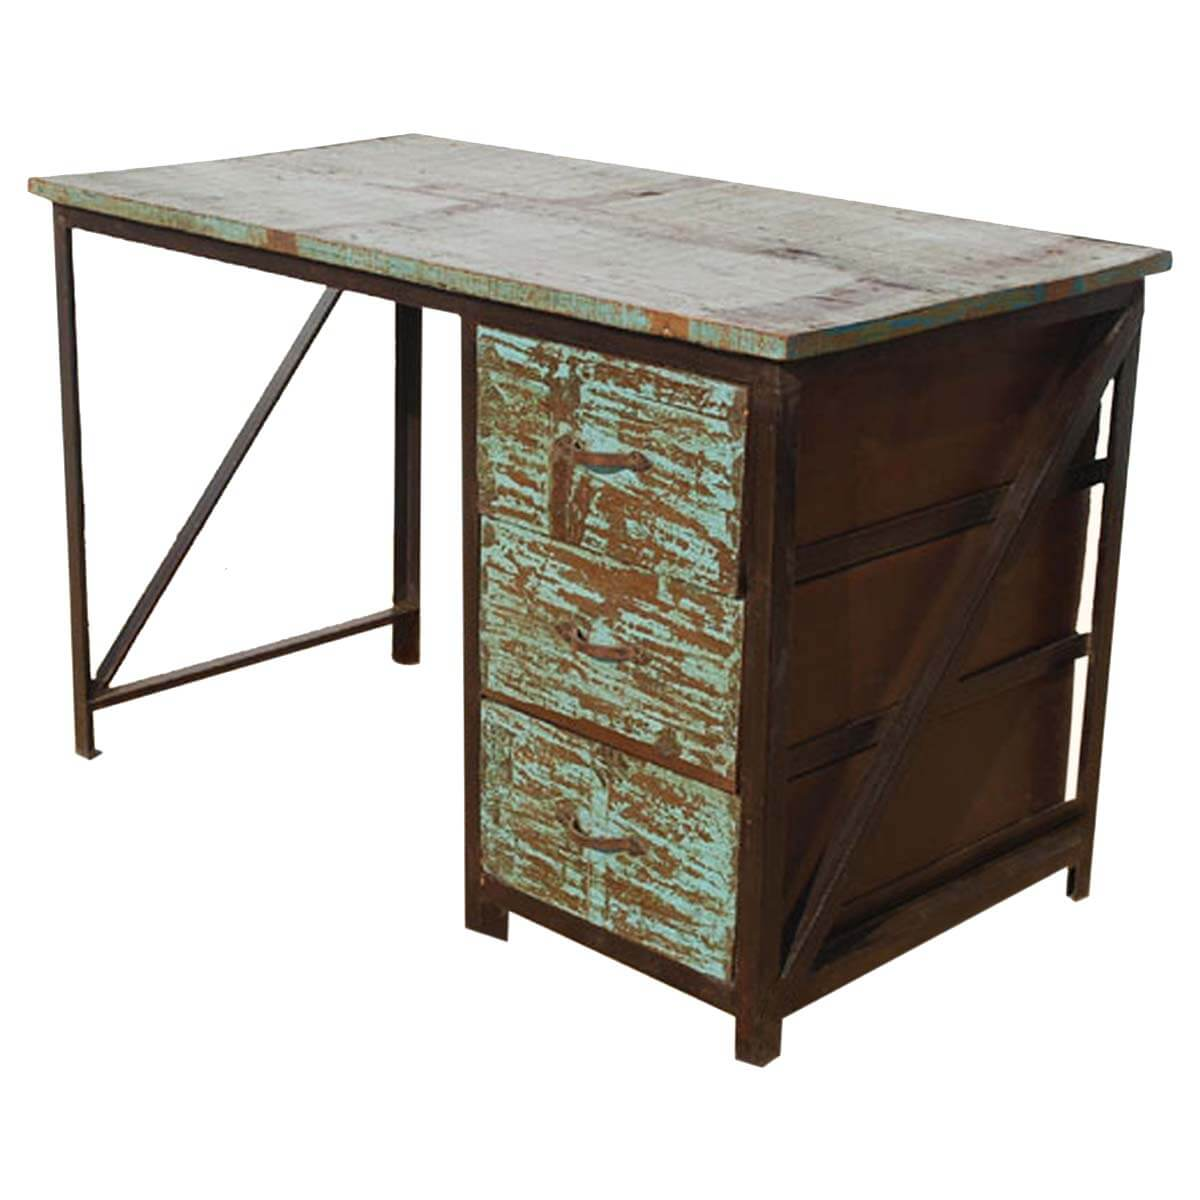 appalachian-industrial-metal-reclaimed-wood-3-drawer-pedestal-desk